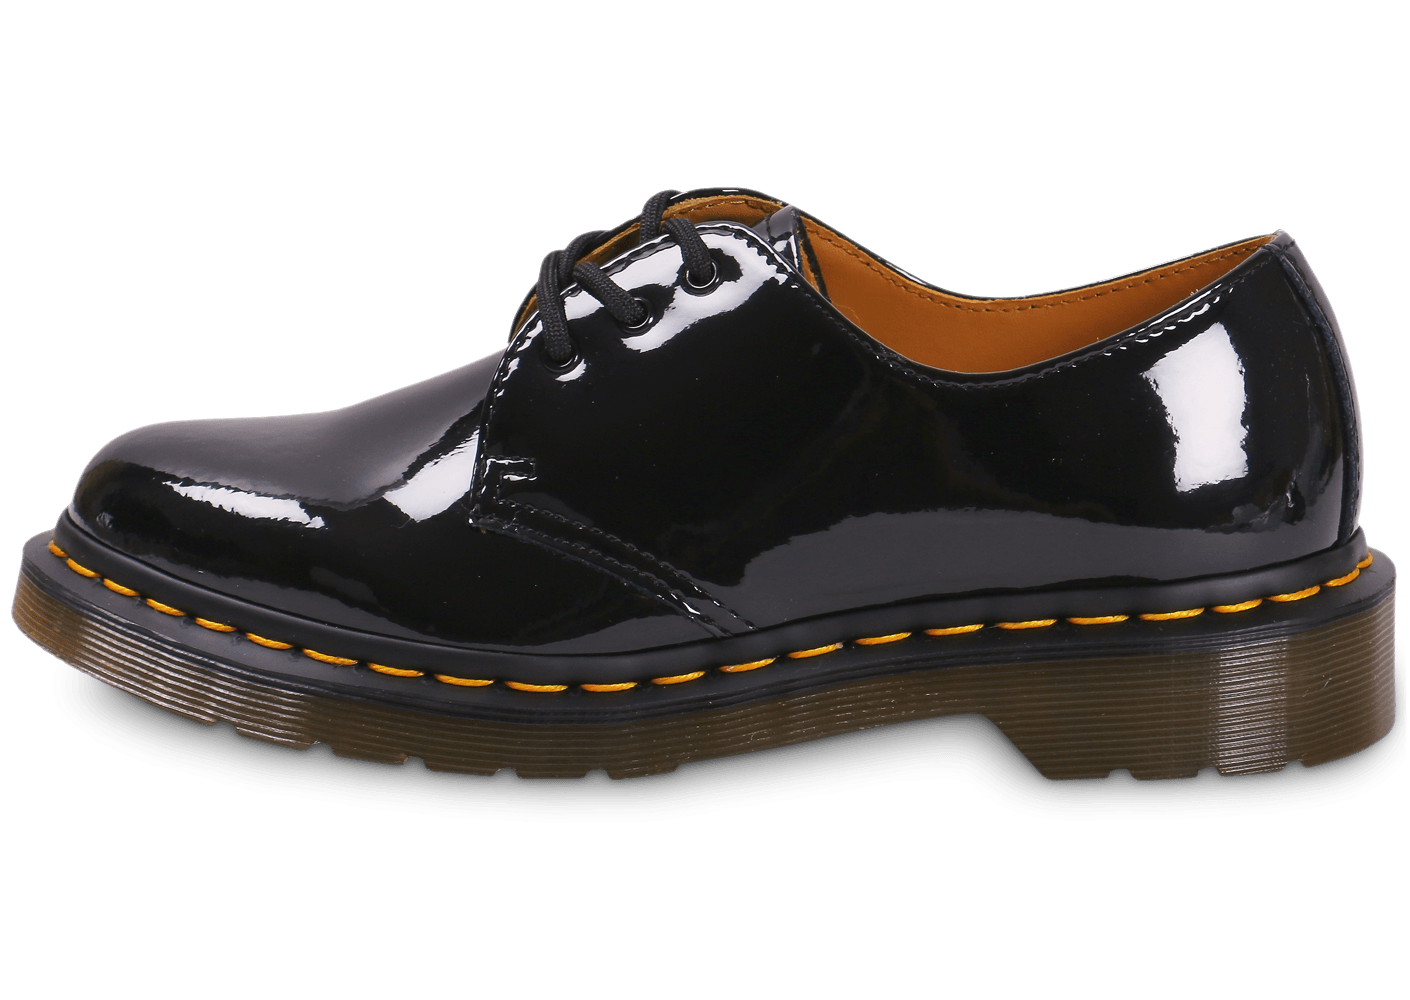 dr martens 1461 w vernis noire chaussures black friday. Black Bedroom Furniture Sets. Home Design Ideas